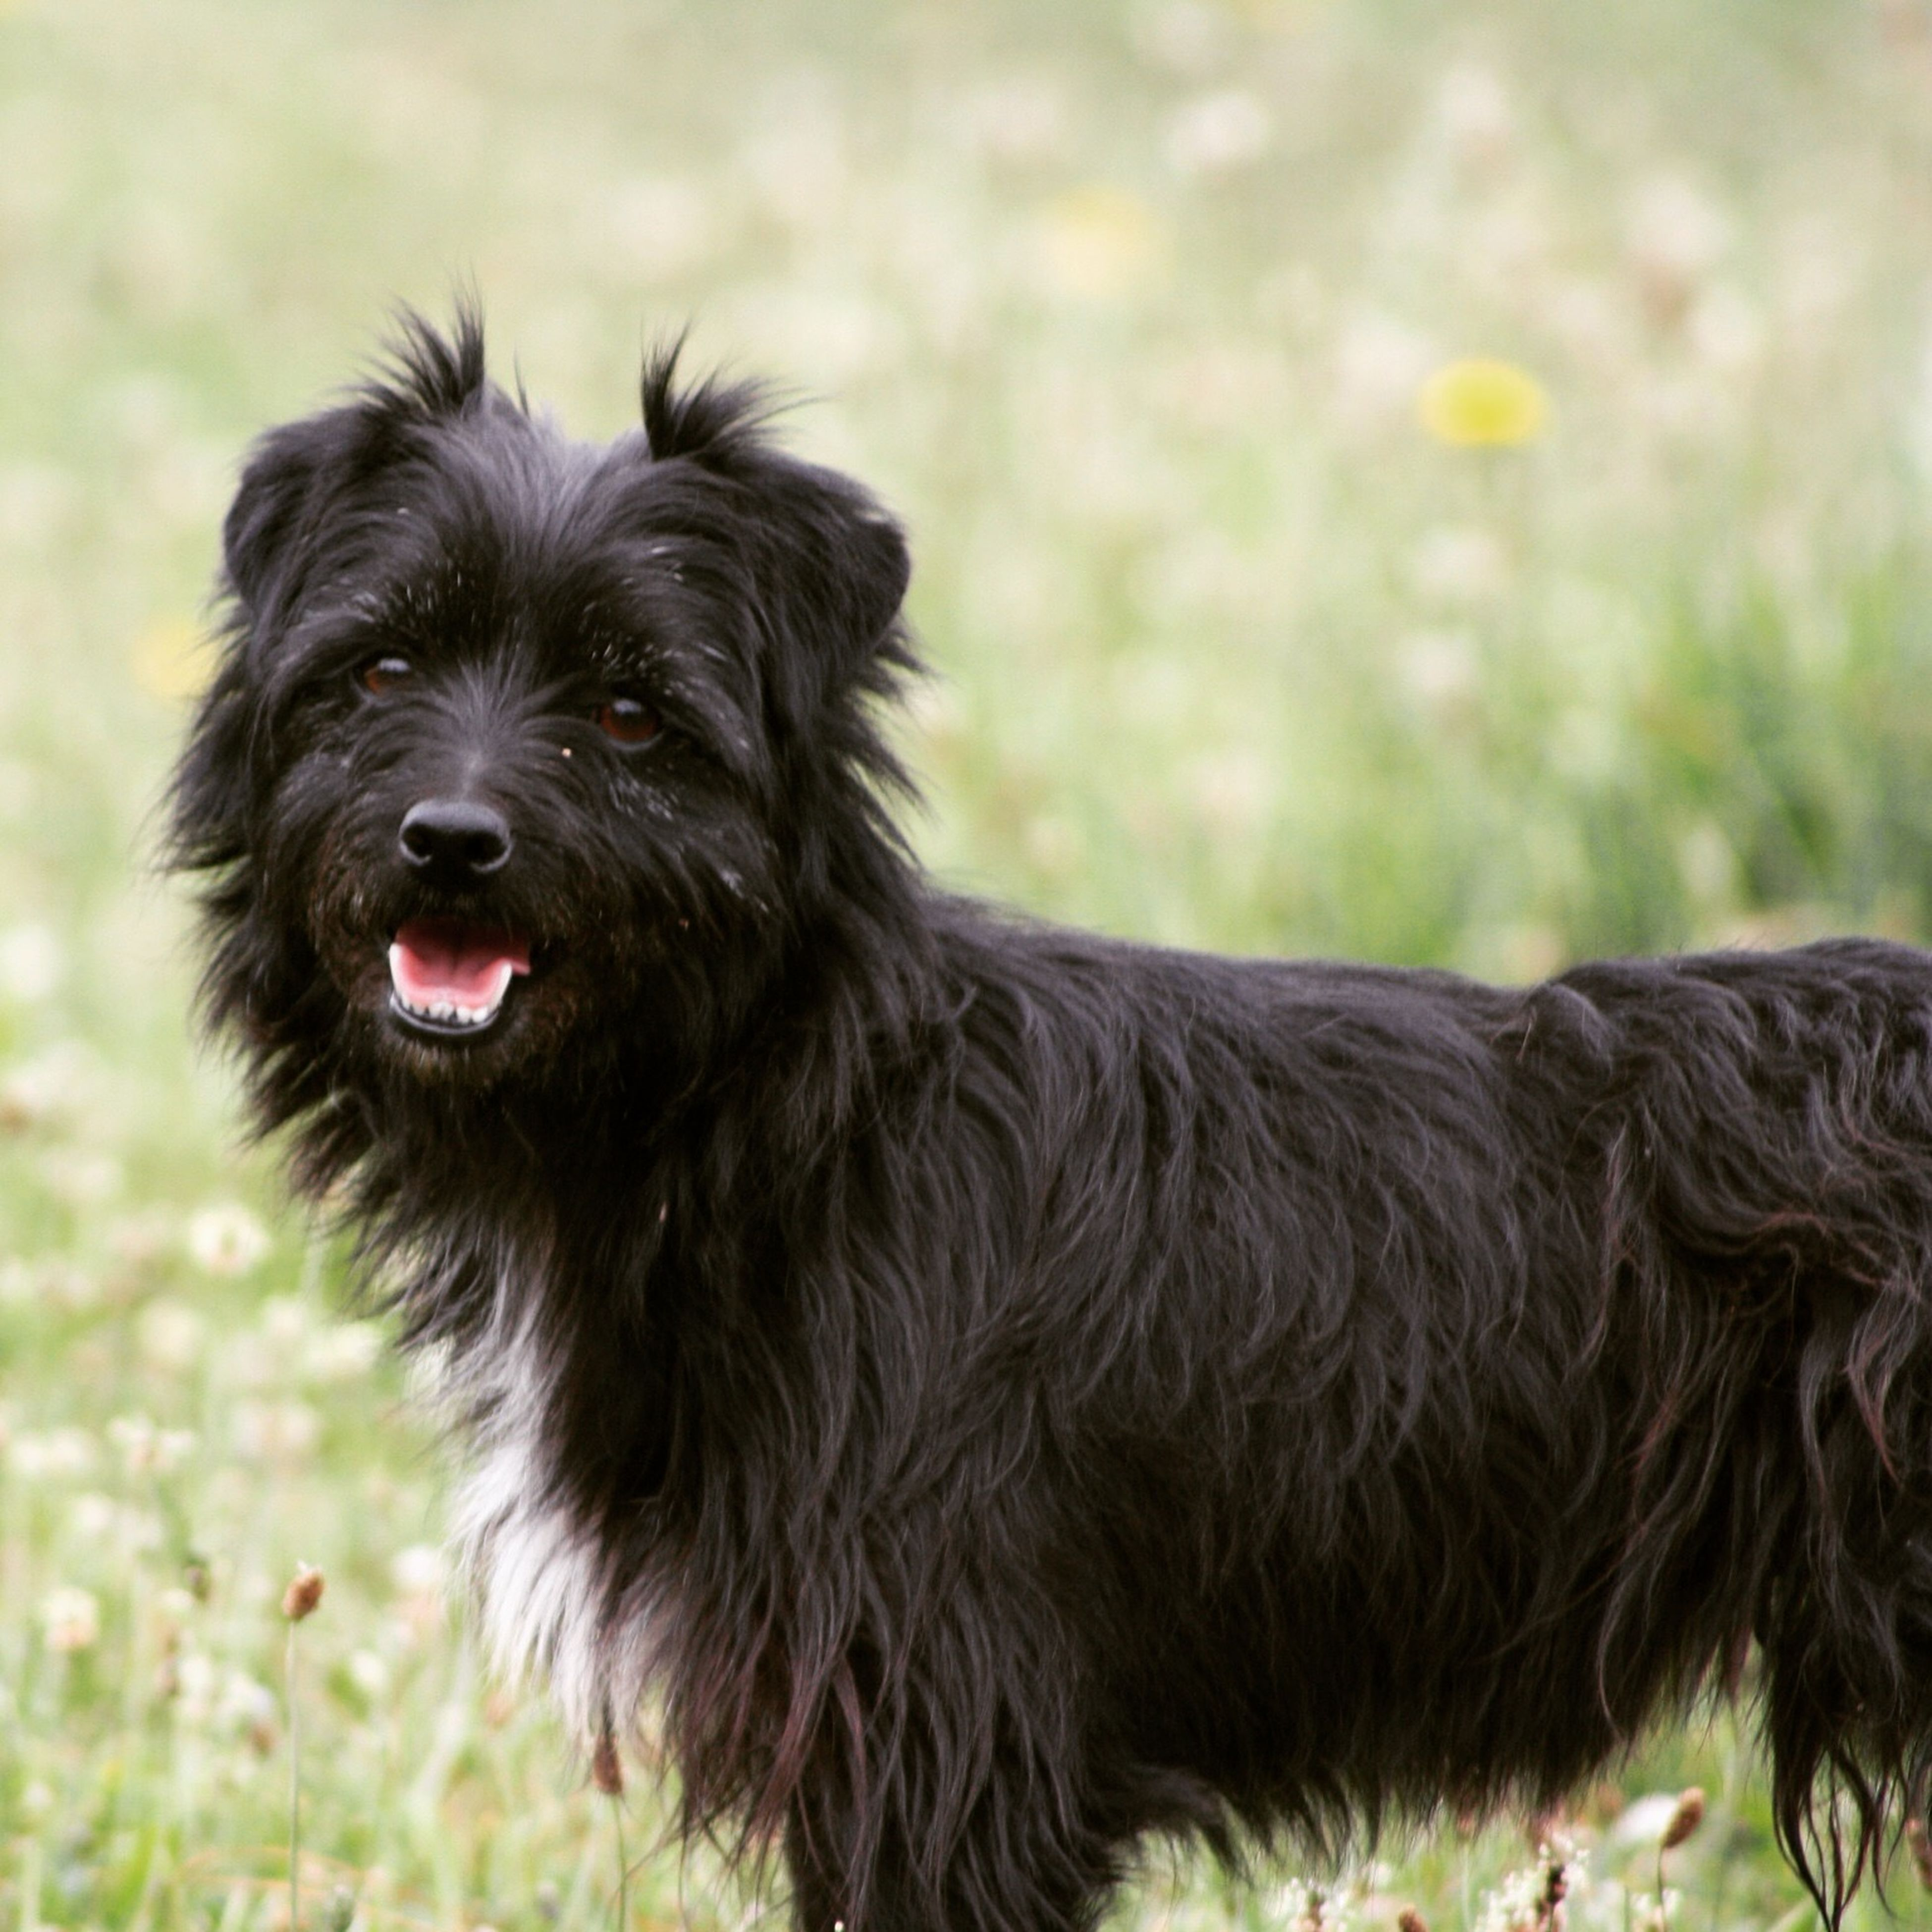 domestic animals, animal themes, one animal, mammal, dog, pets, focus on foreground, field, black color, grass, close-up, animal hair, animal head, portrait, looking at camera, sticking out tongue, no people, outdoors, day, animal body part